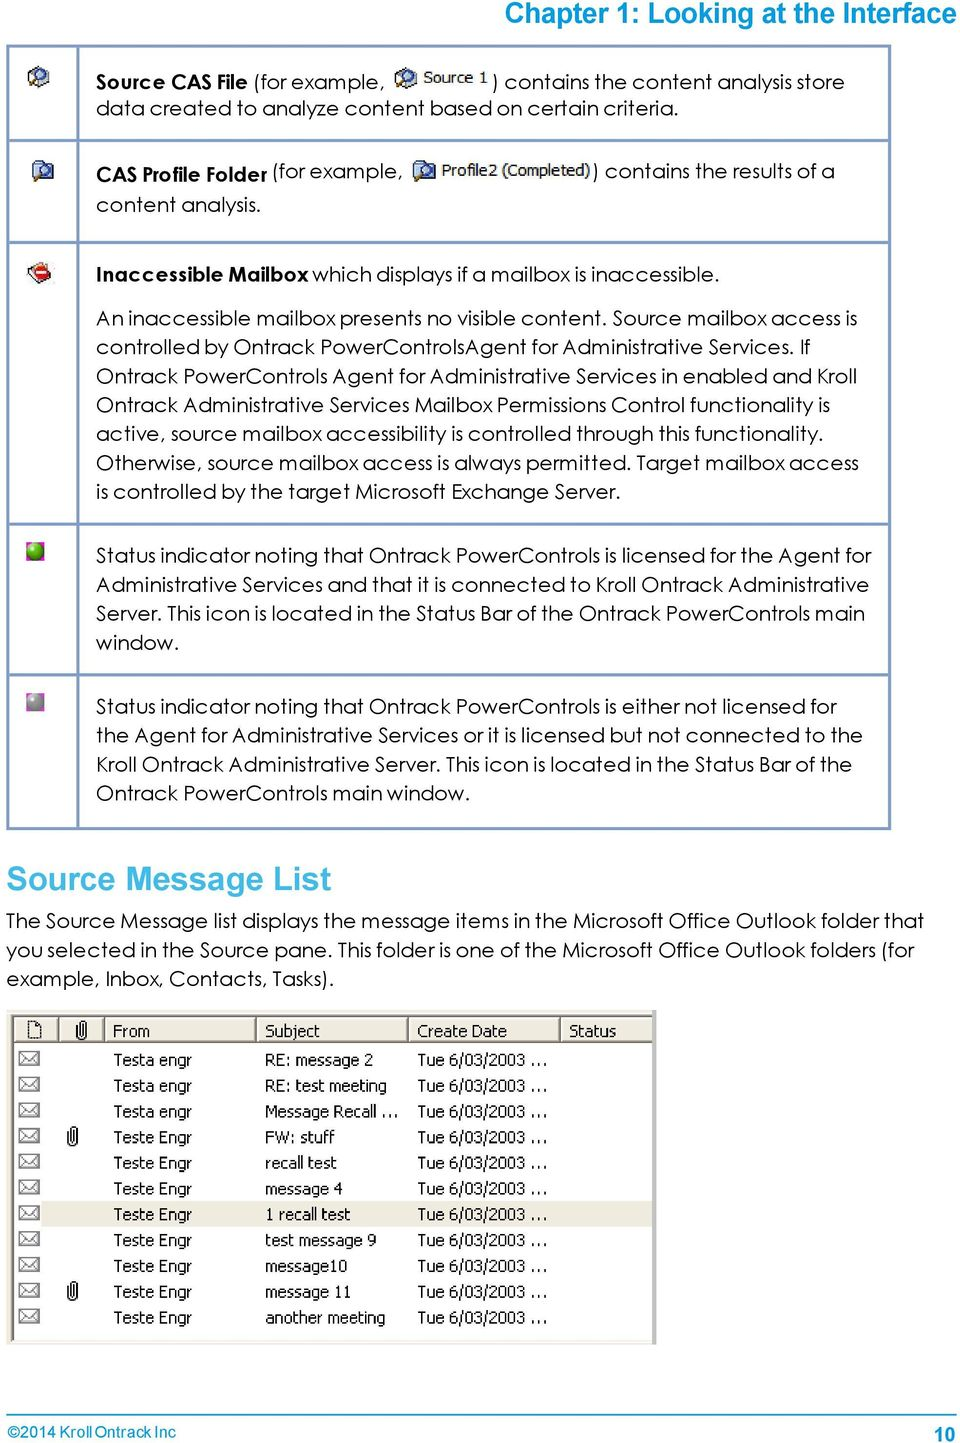 Source mailbox access is controlled by Ontrack PowerControlsAgent for Administrative Services.